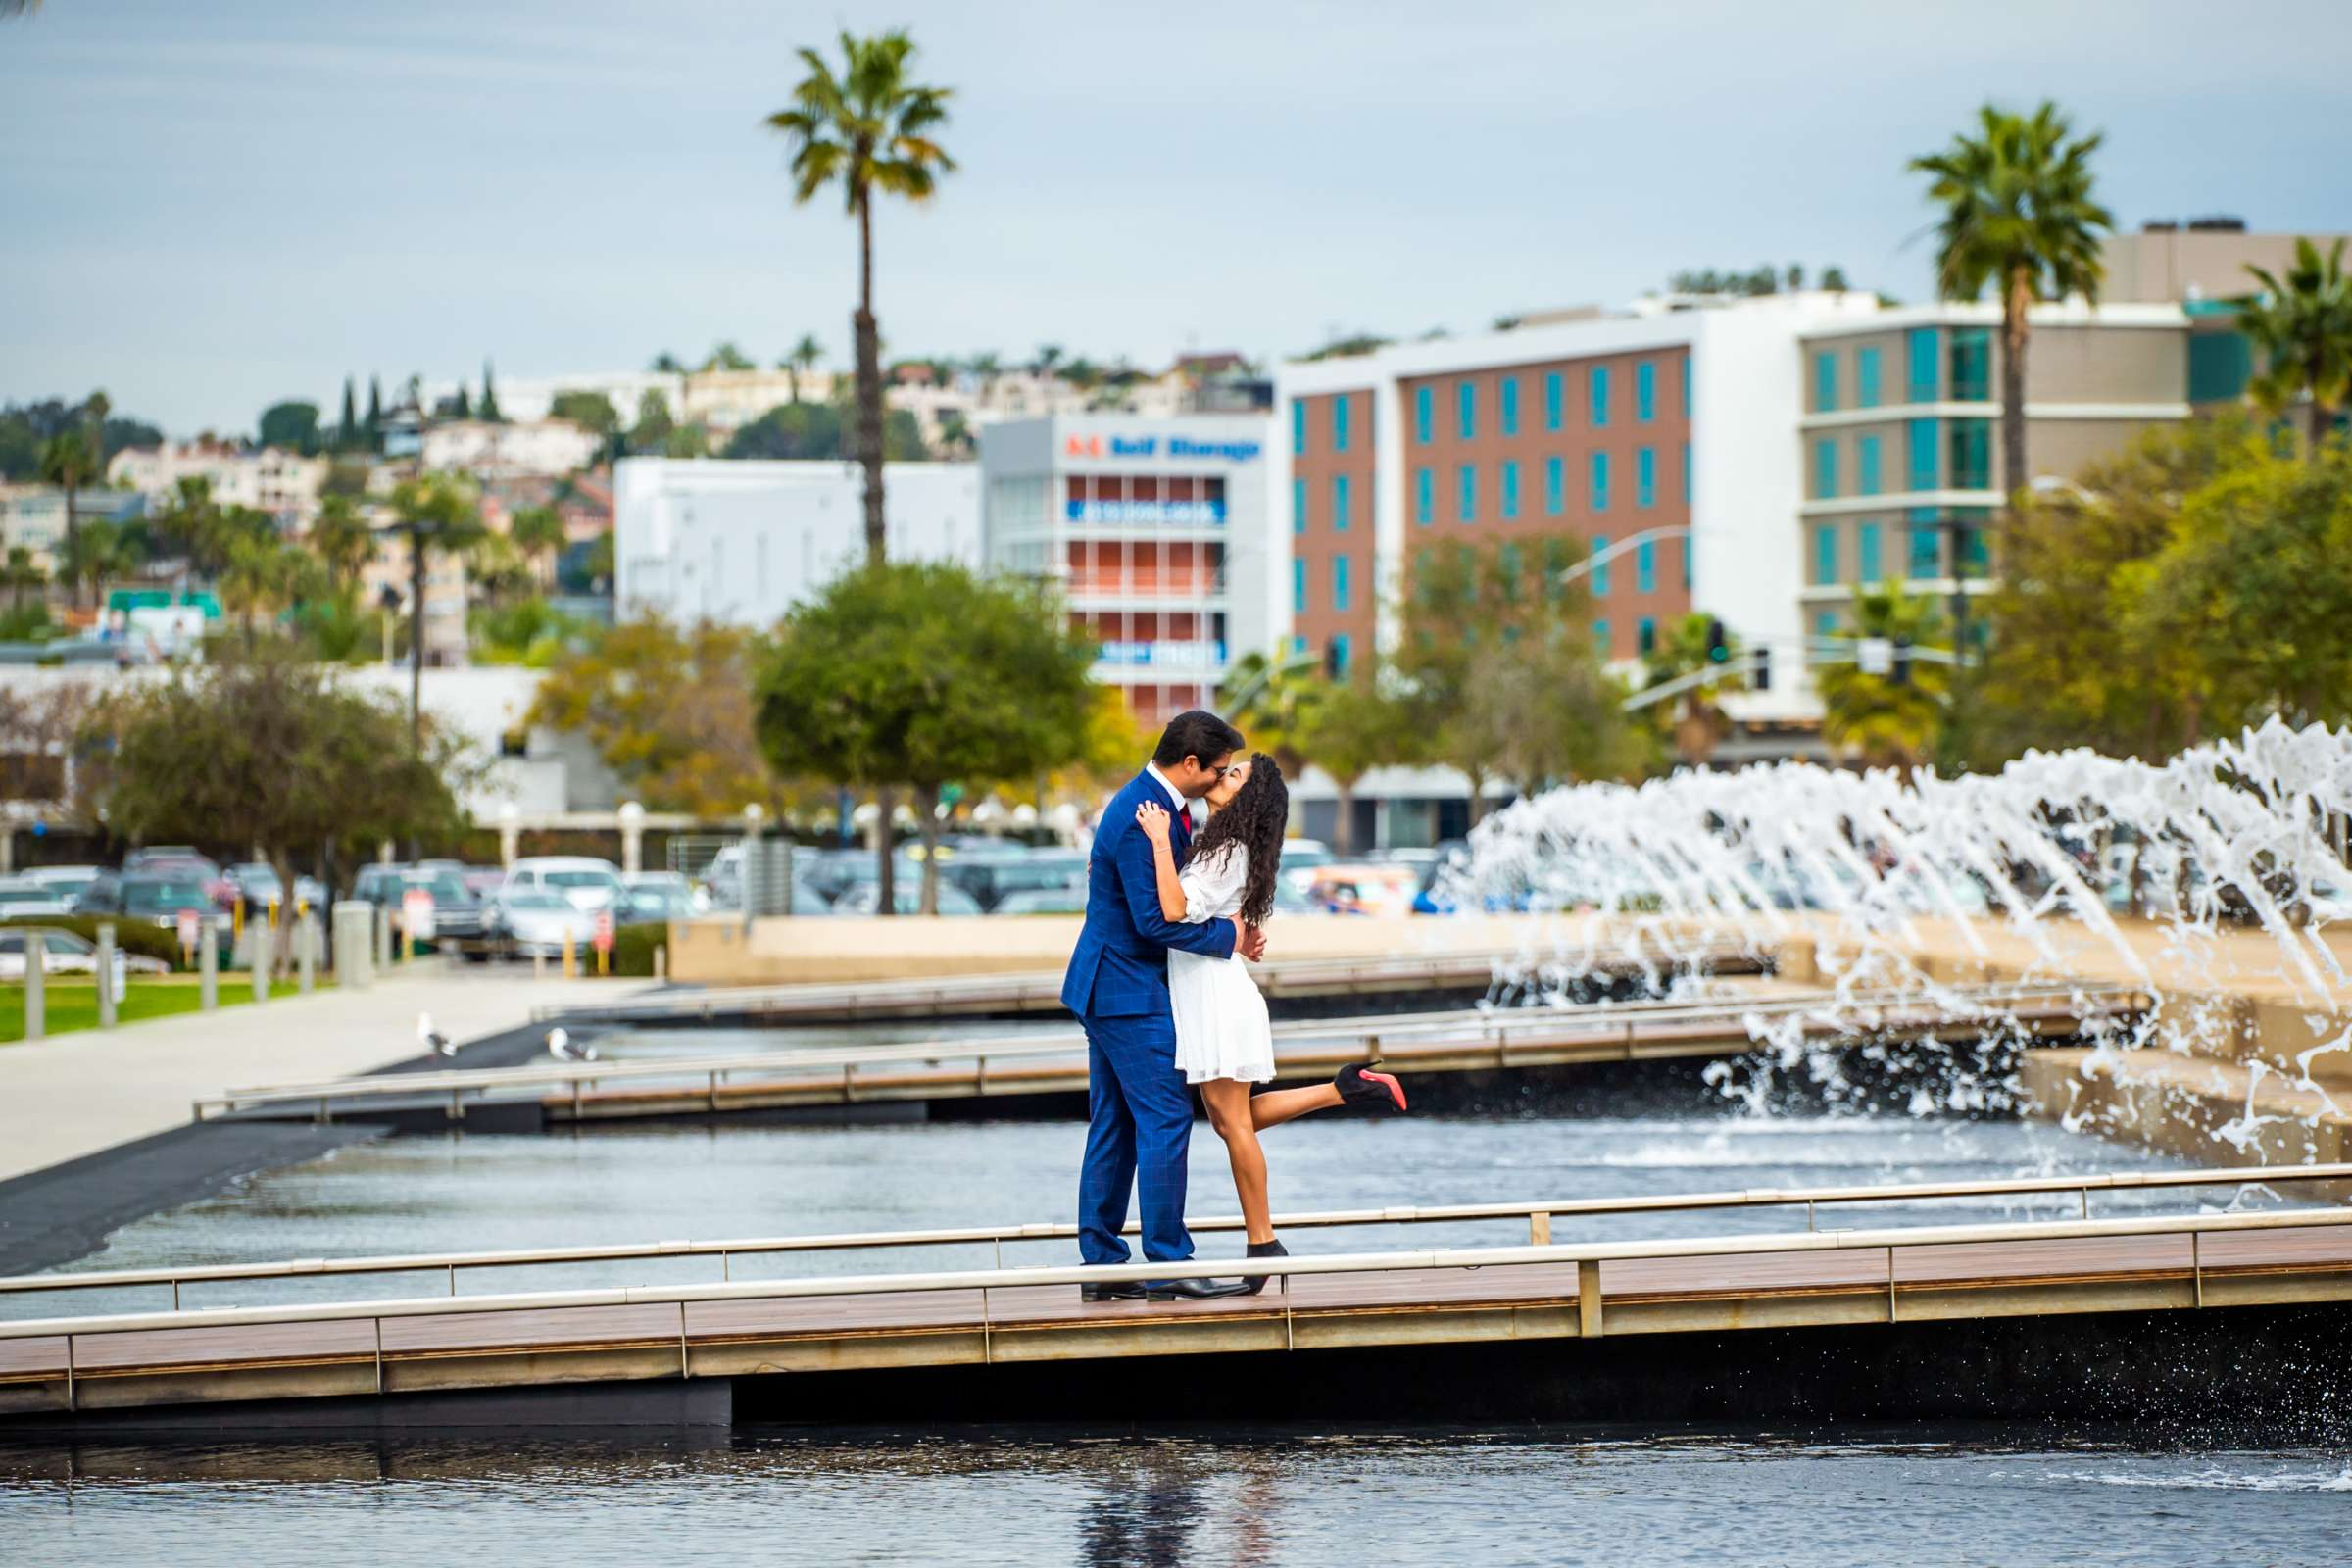 San Diego Courthouse Event, Gabriela and Peter Wedding Event Photo #622829 by True Photography